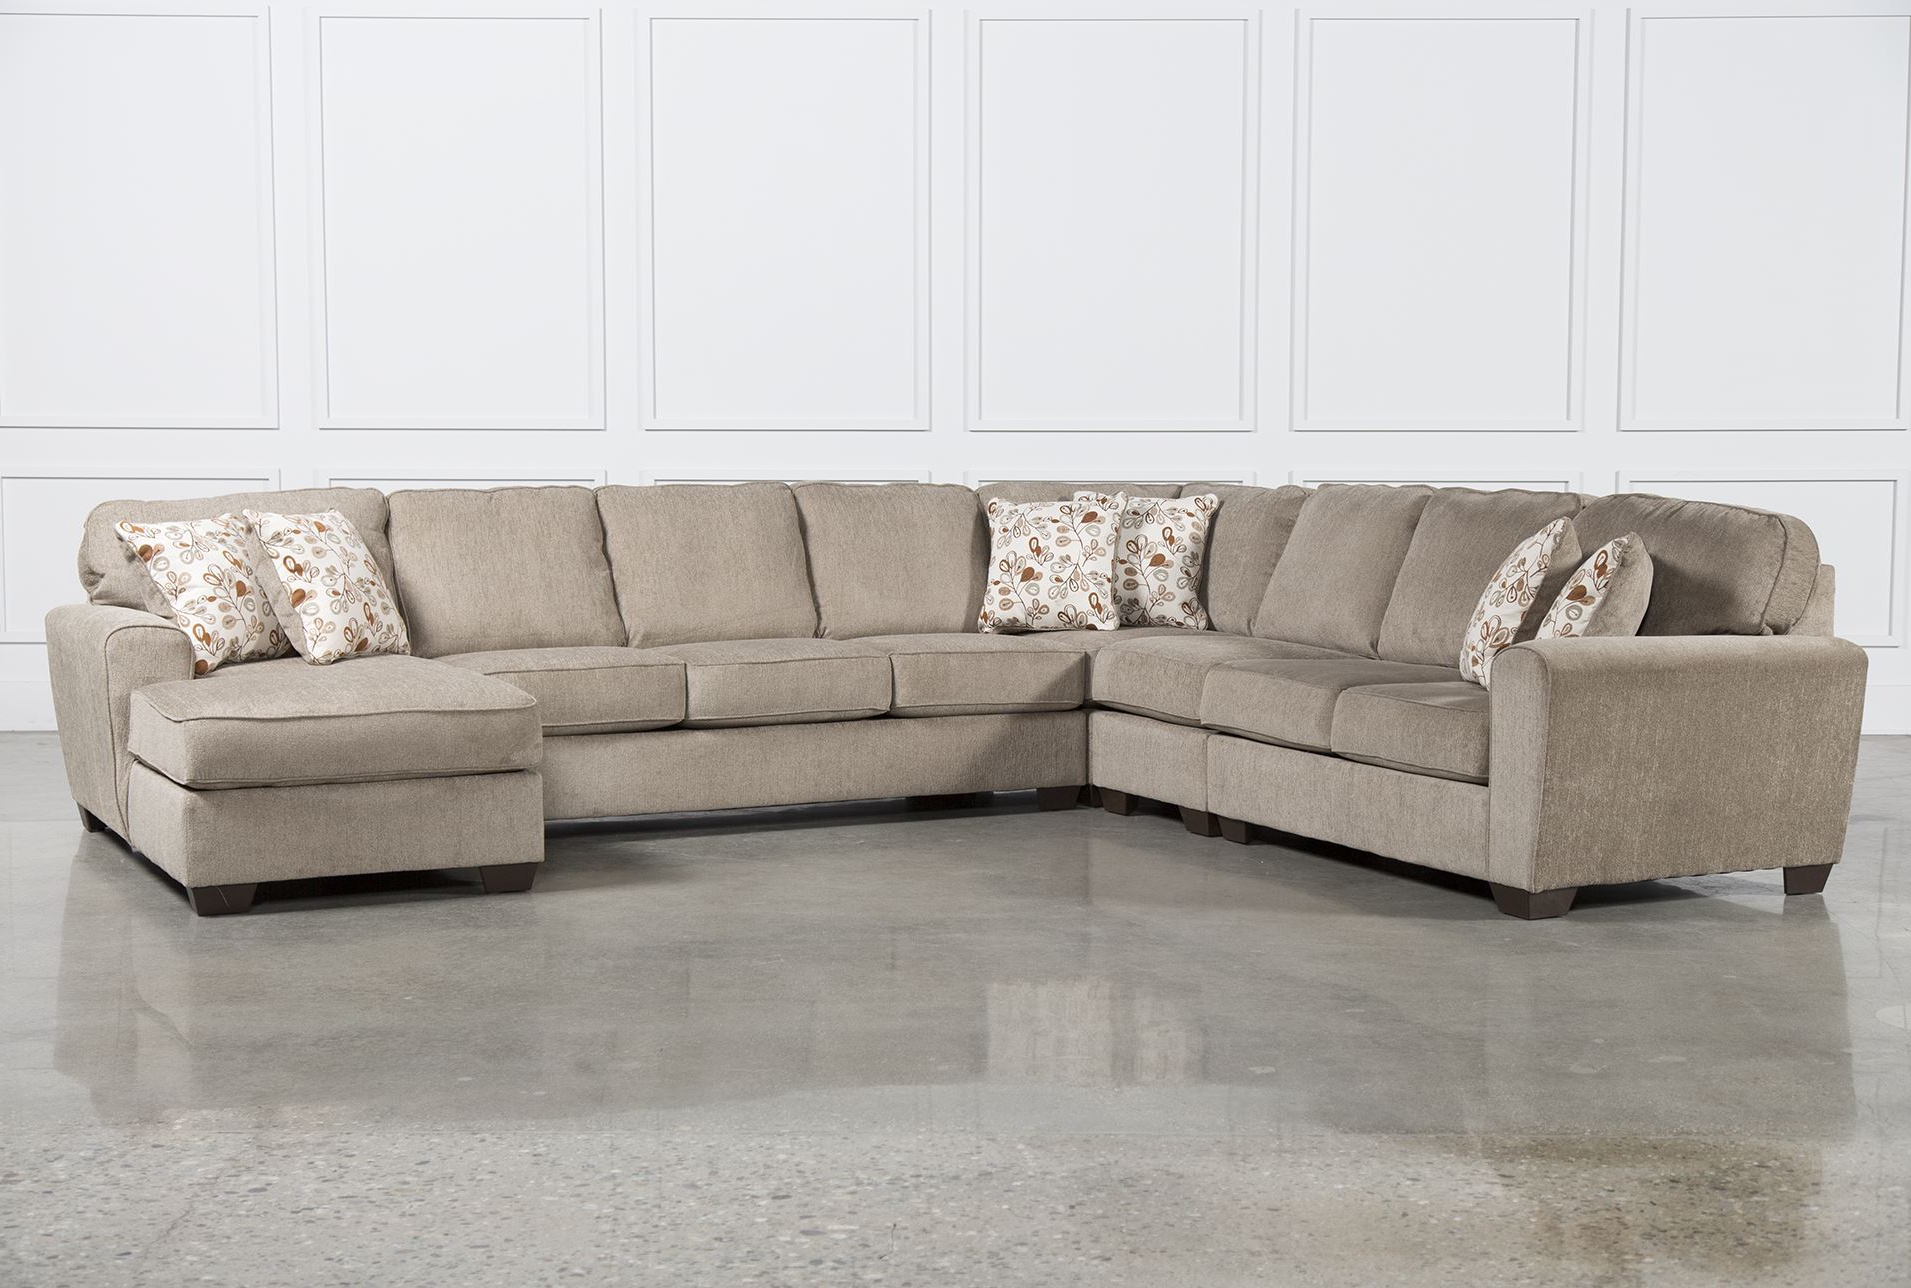 Preferred Best Ideas Of Raf Chaise In Patola Park 5 Piece Sectional W Raf With Regard To Meyer 3 Piece Sectionals With Raf Chaise (Gallery 11 of 20)